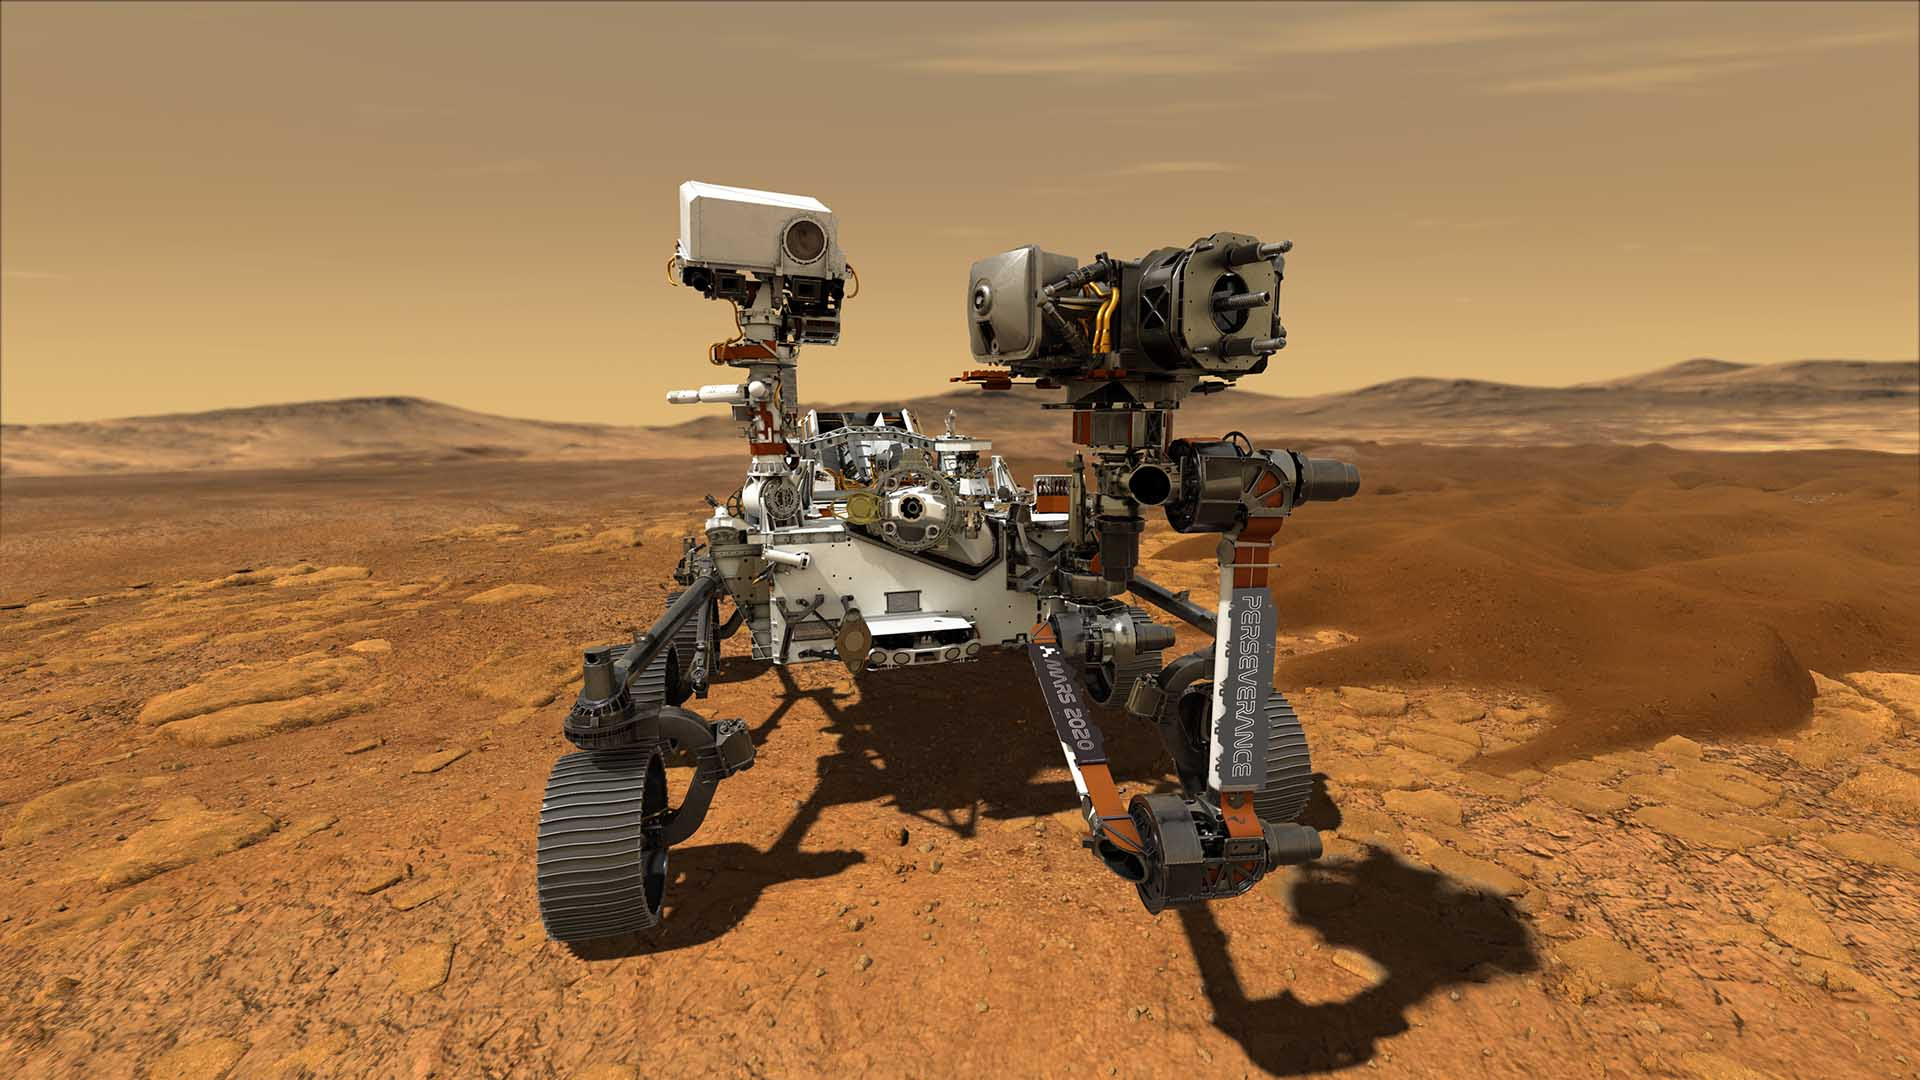 Nasa S Mars Rover Perseverance Still On Track For July Launch Images, Photos, Reviews